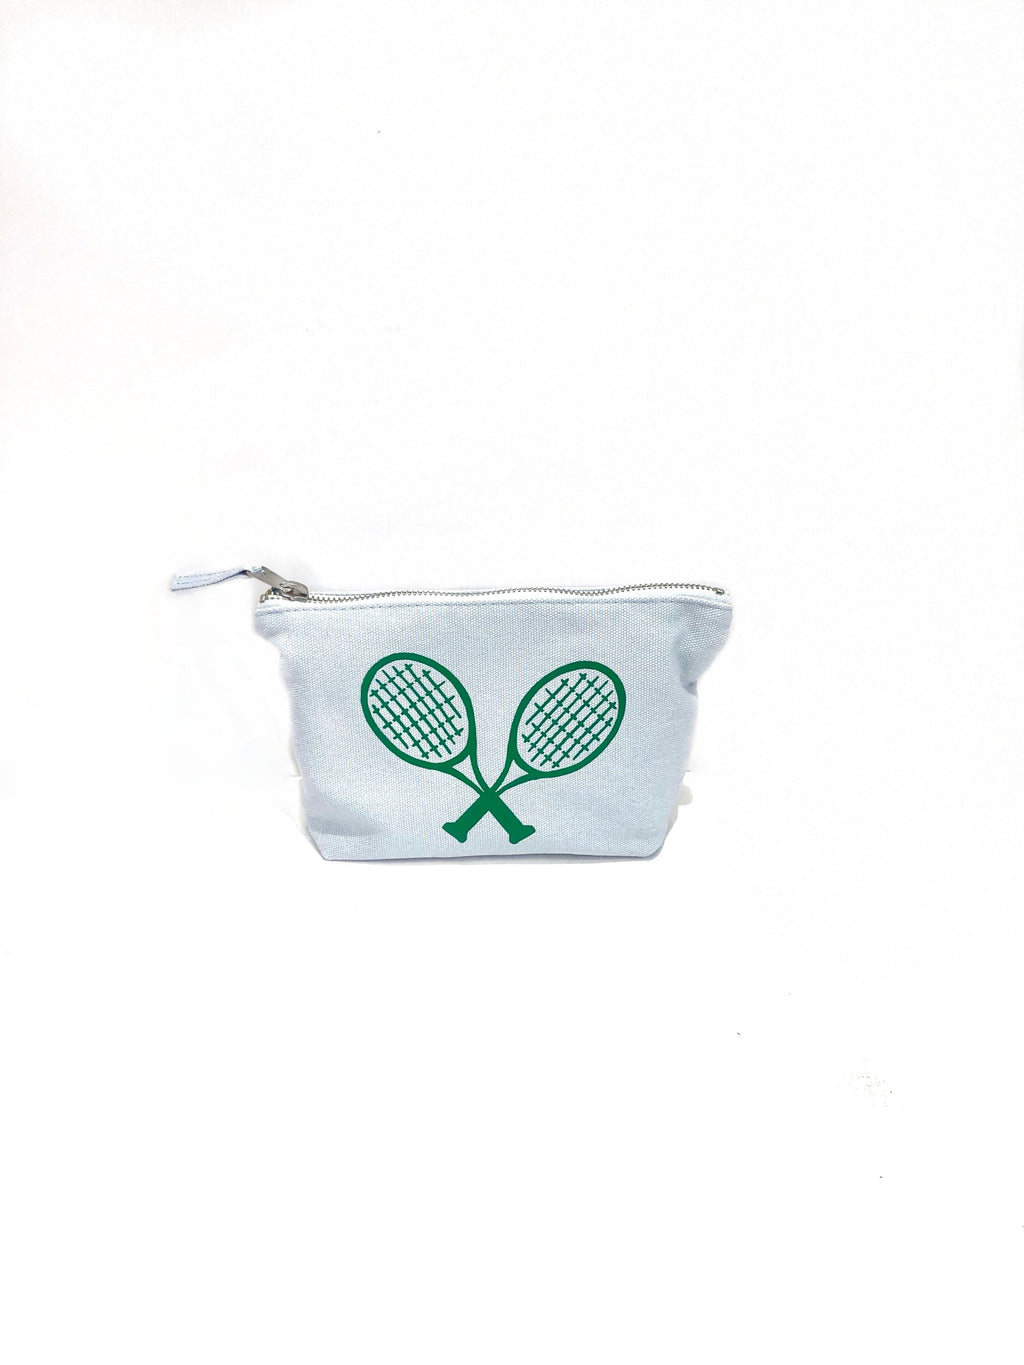 Makeup Bag Blue with Tennis (4919874256967)